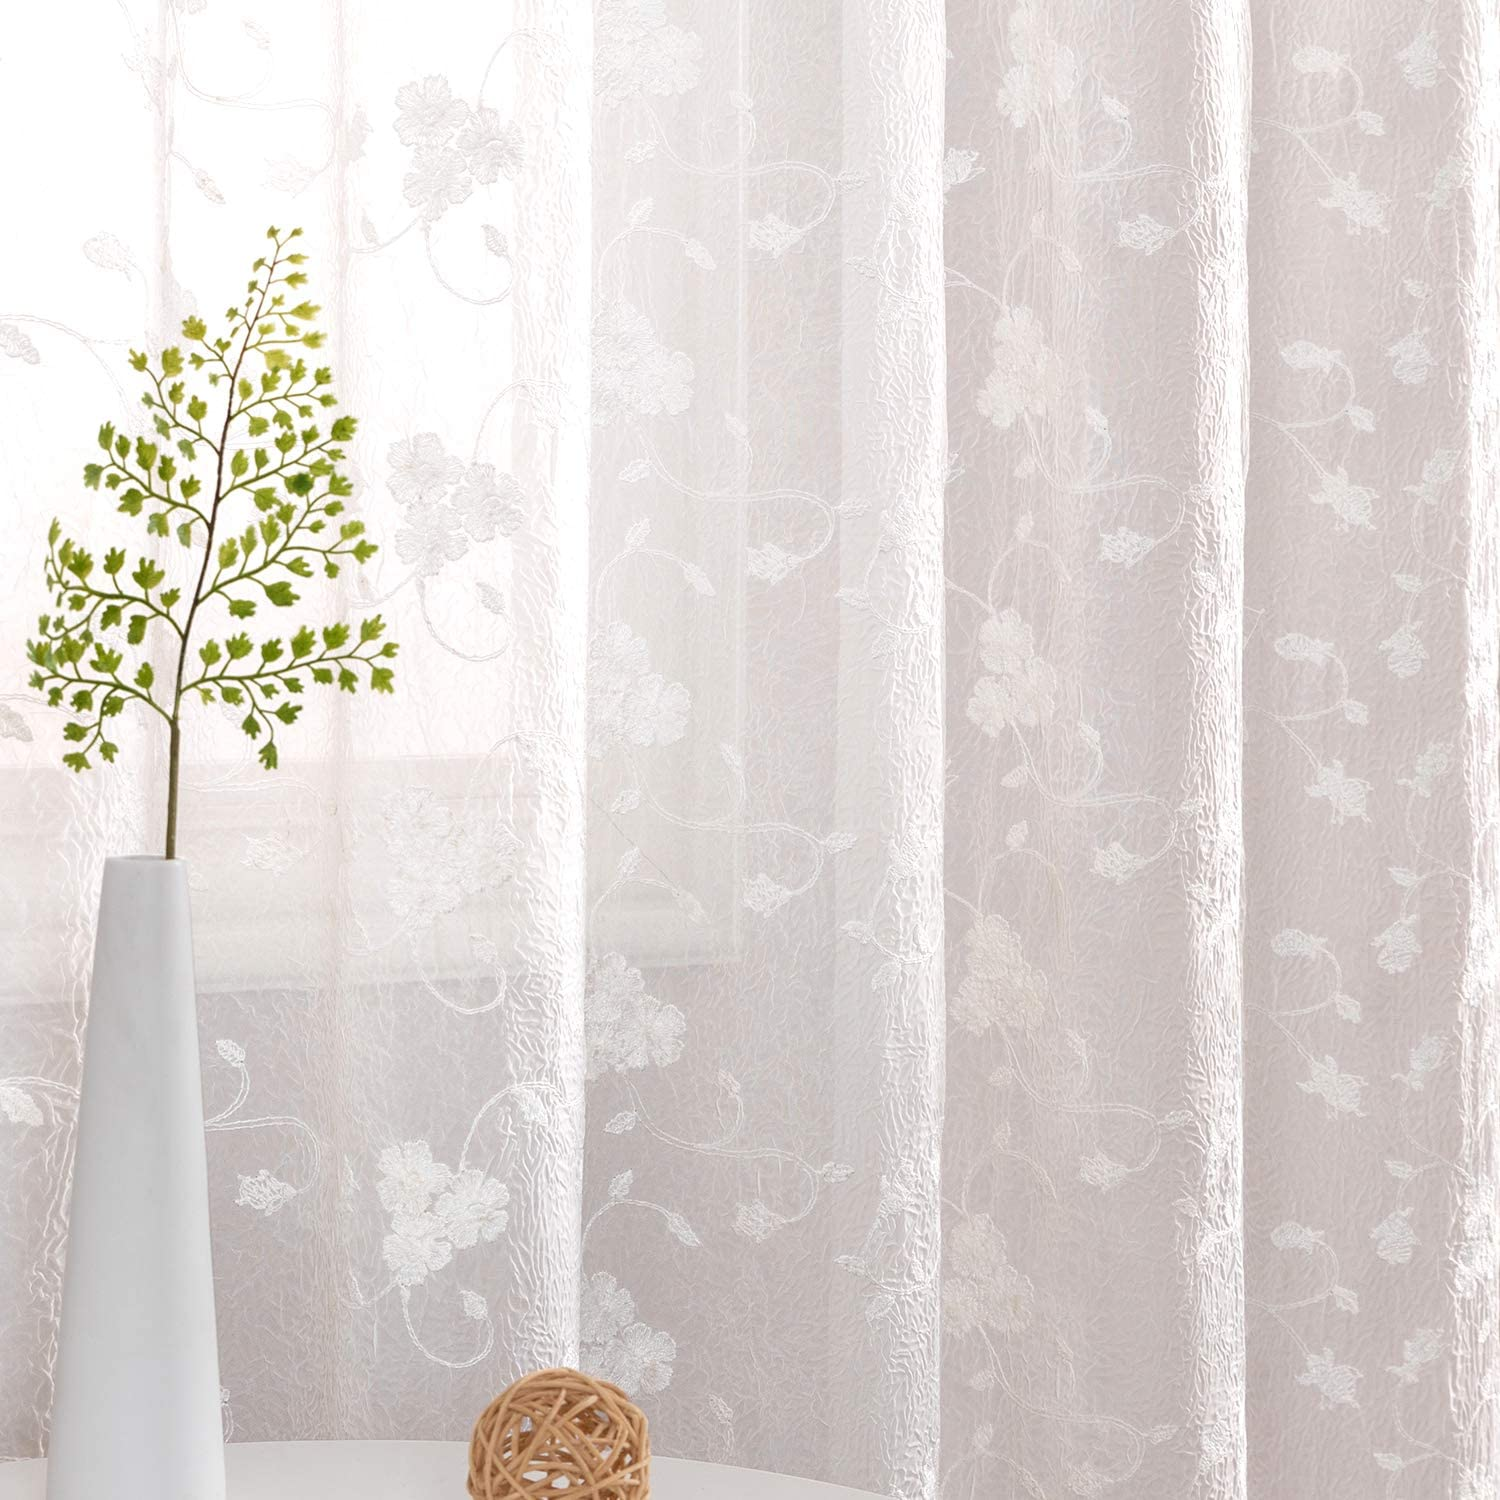 Amazon Com Sheer Curtains For Bedroom Flower Embroidery Voile Living Room Country Curtains Rustic Vintage Floral Embroidered Window Treatment Set Rod Pocket Pole Top 40 Inch Wide 63 Inch Long 2 Panels White